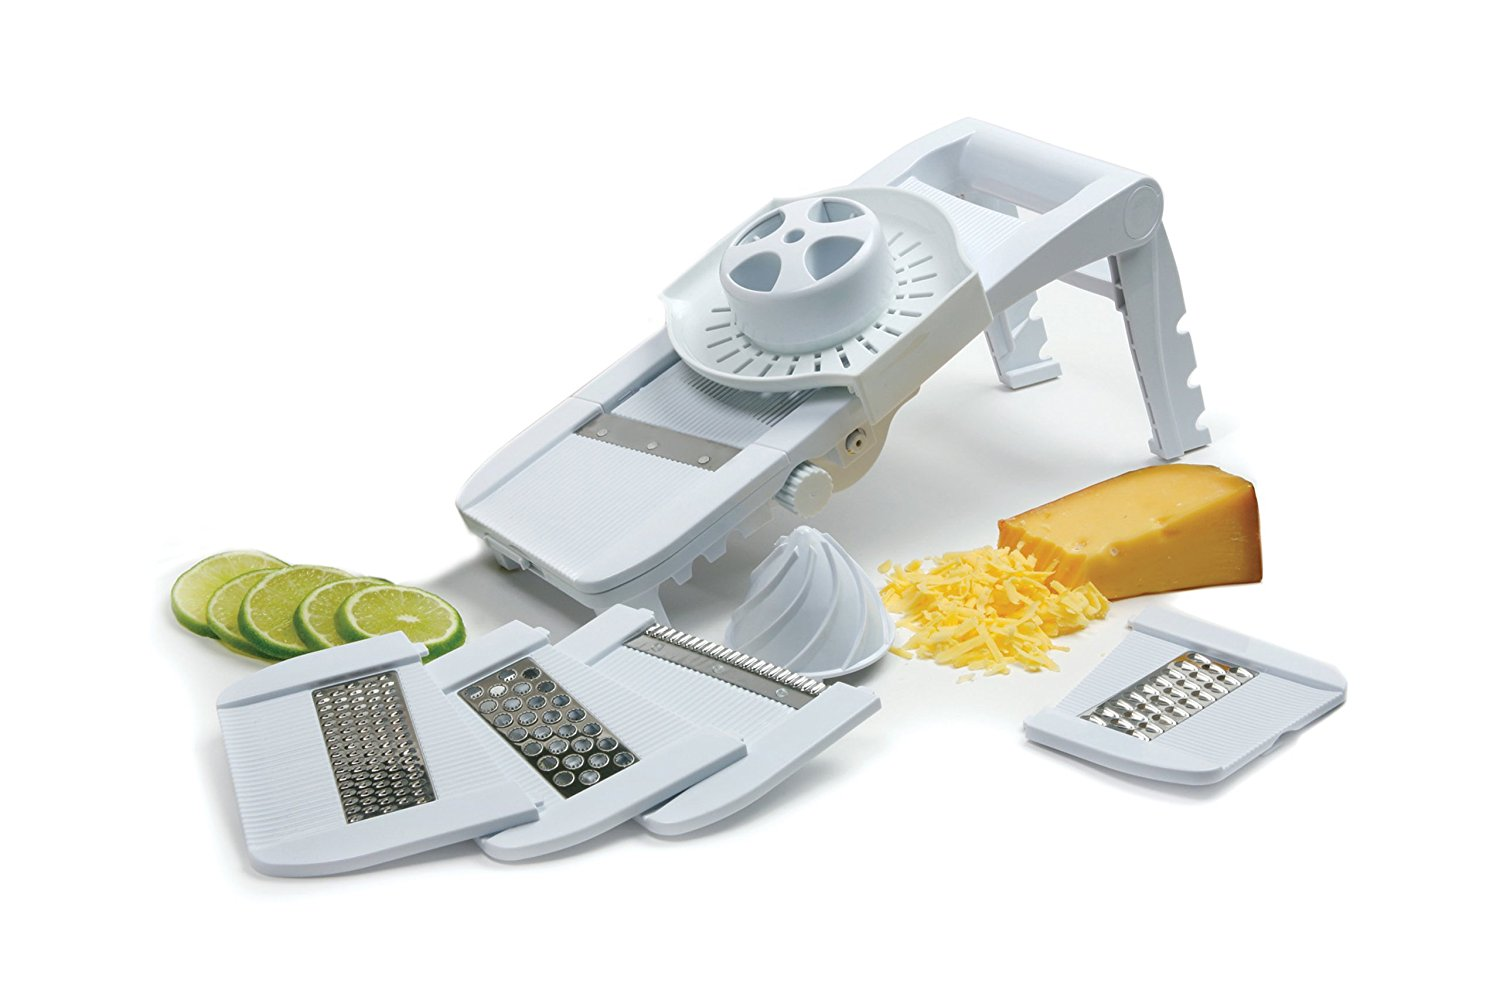 Best Manoline Slicer-Norpro Deluxe Mandoline Slicer, Grater, Shredder, Julienne and Juicer